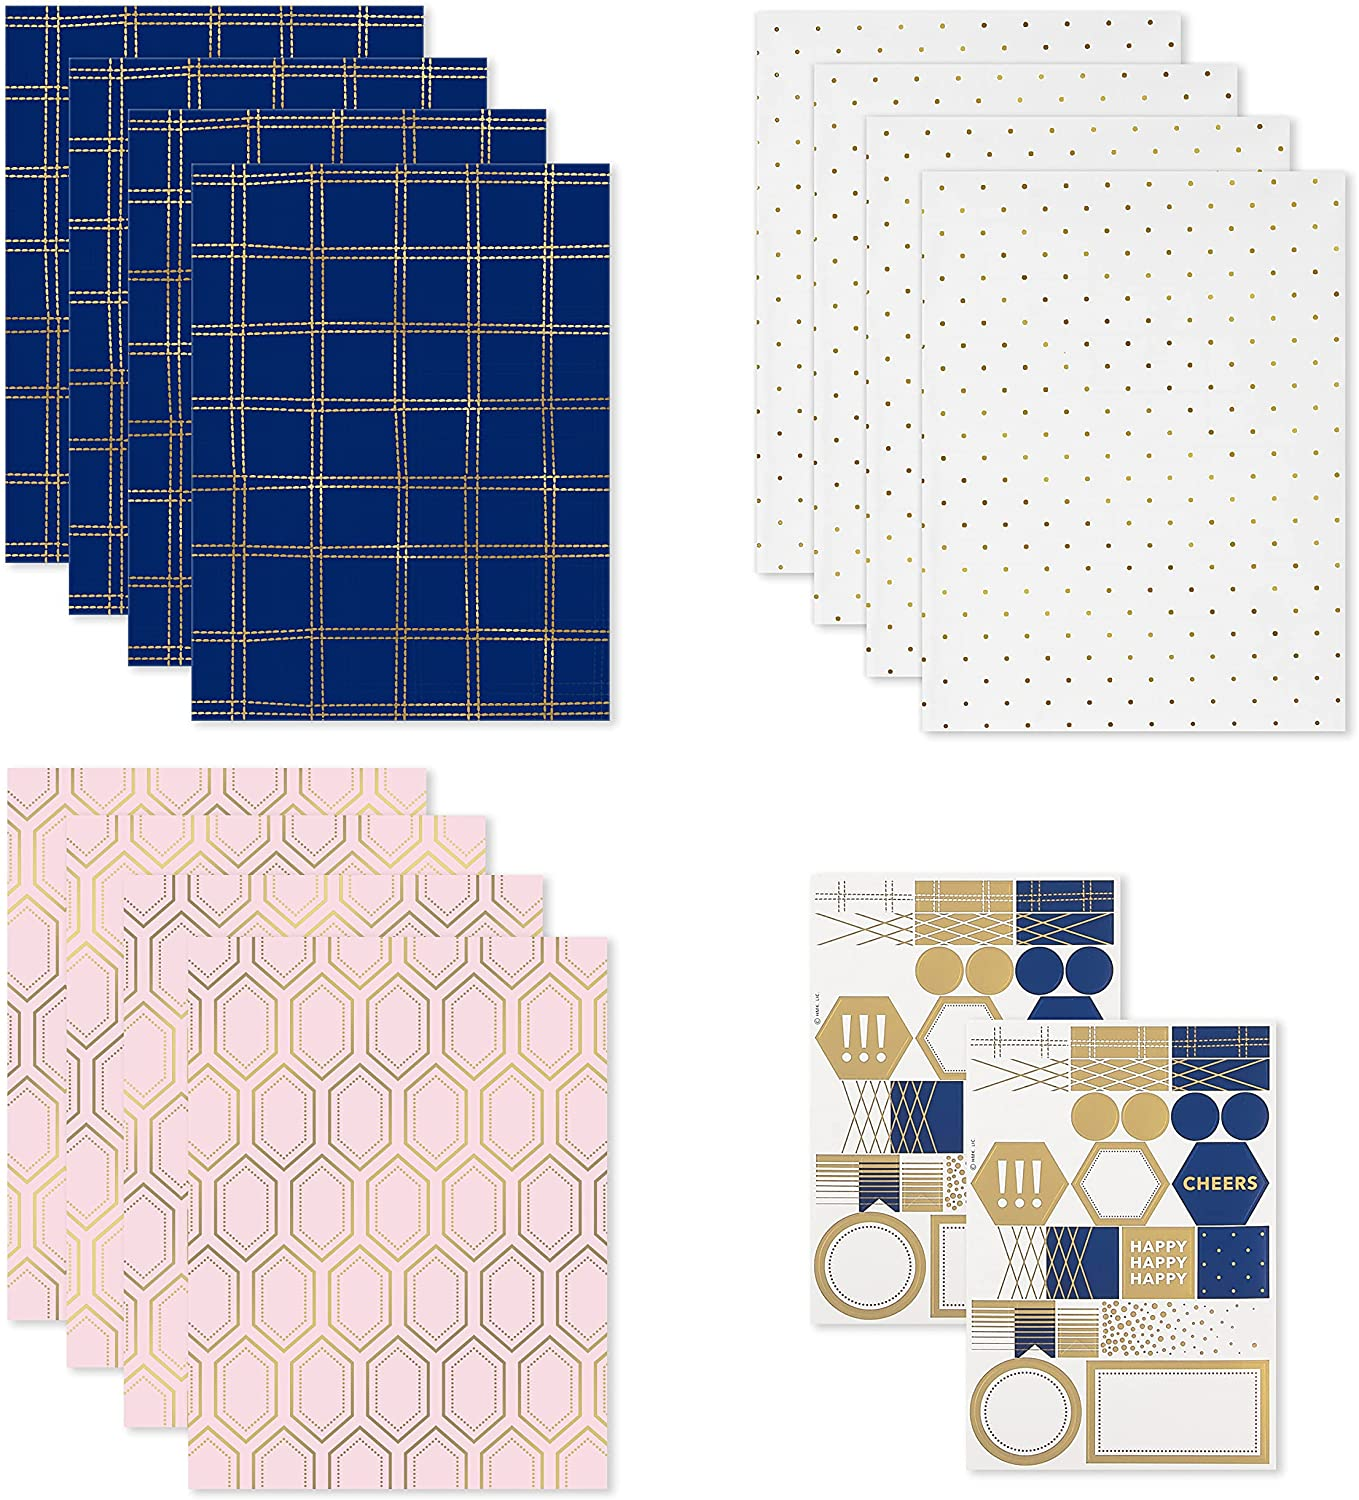 Hallmark Flat Wrapping Paper Sheets Reverse Philadelphia Mall on Cutlines with 12 Washington Mall